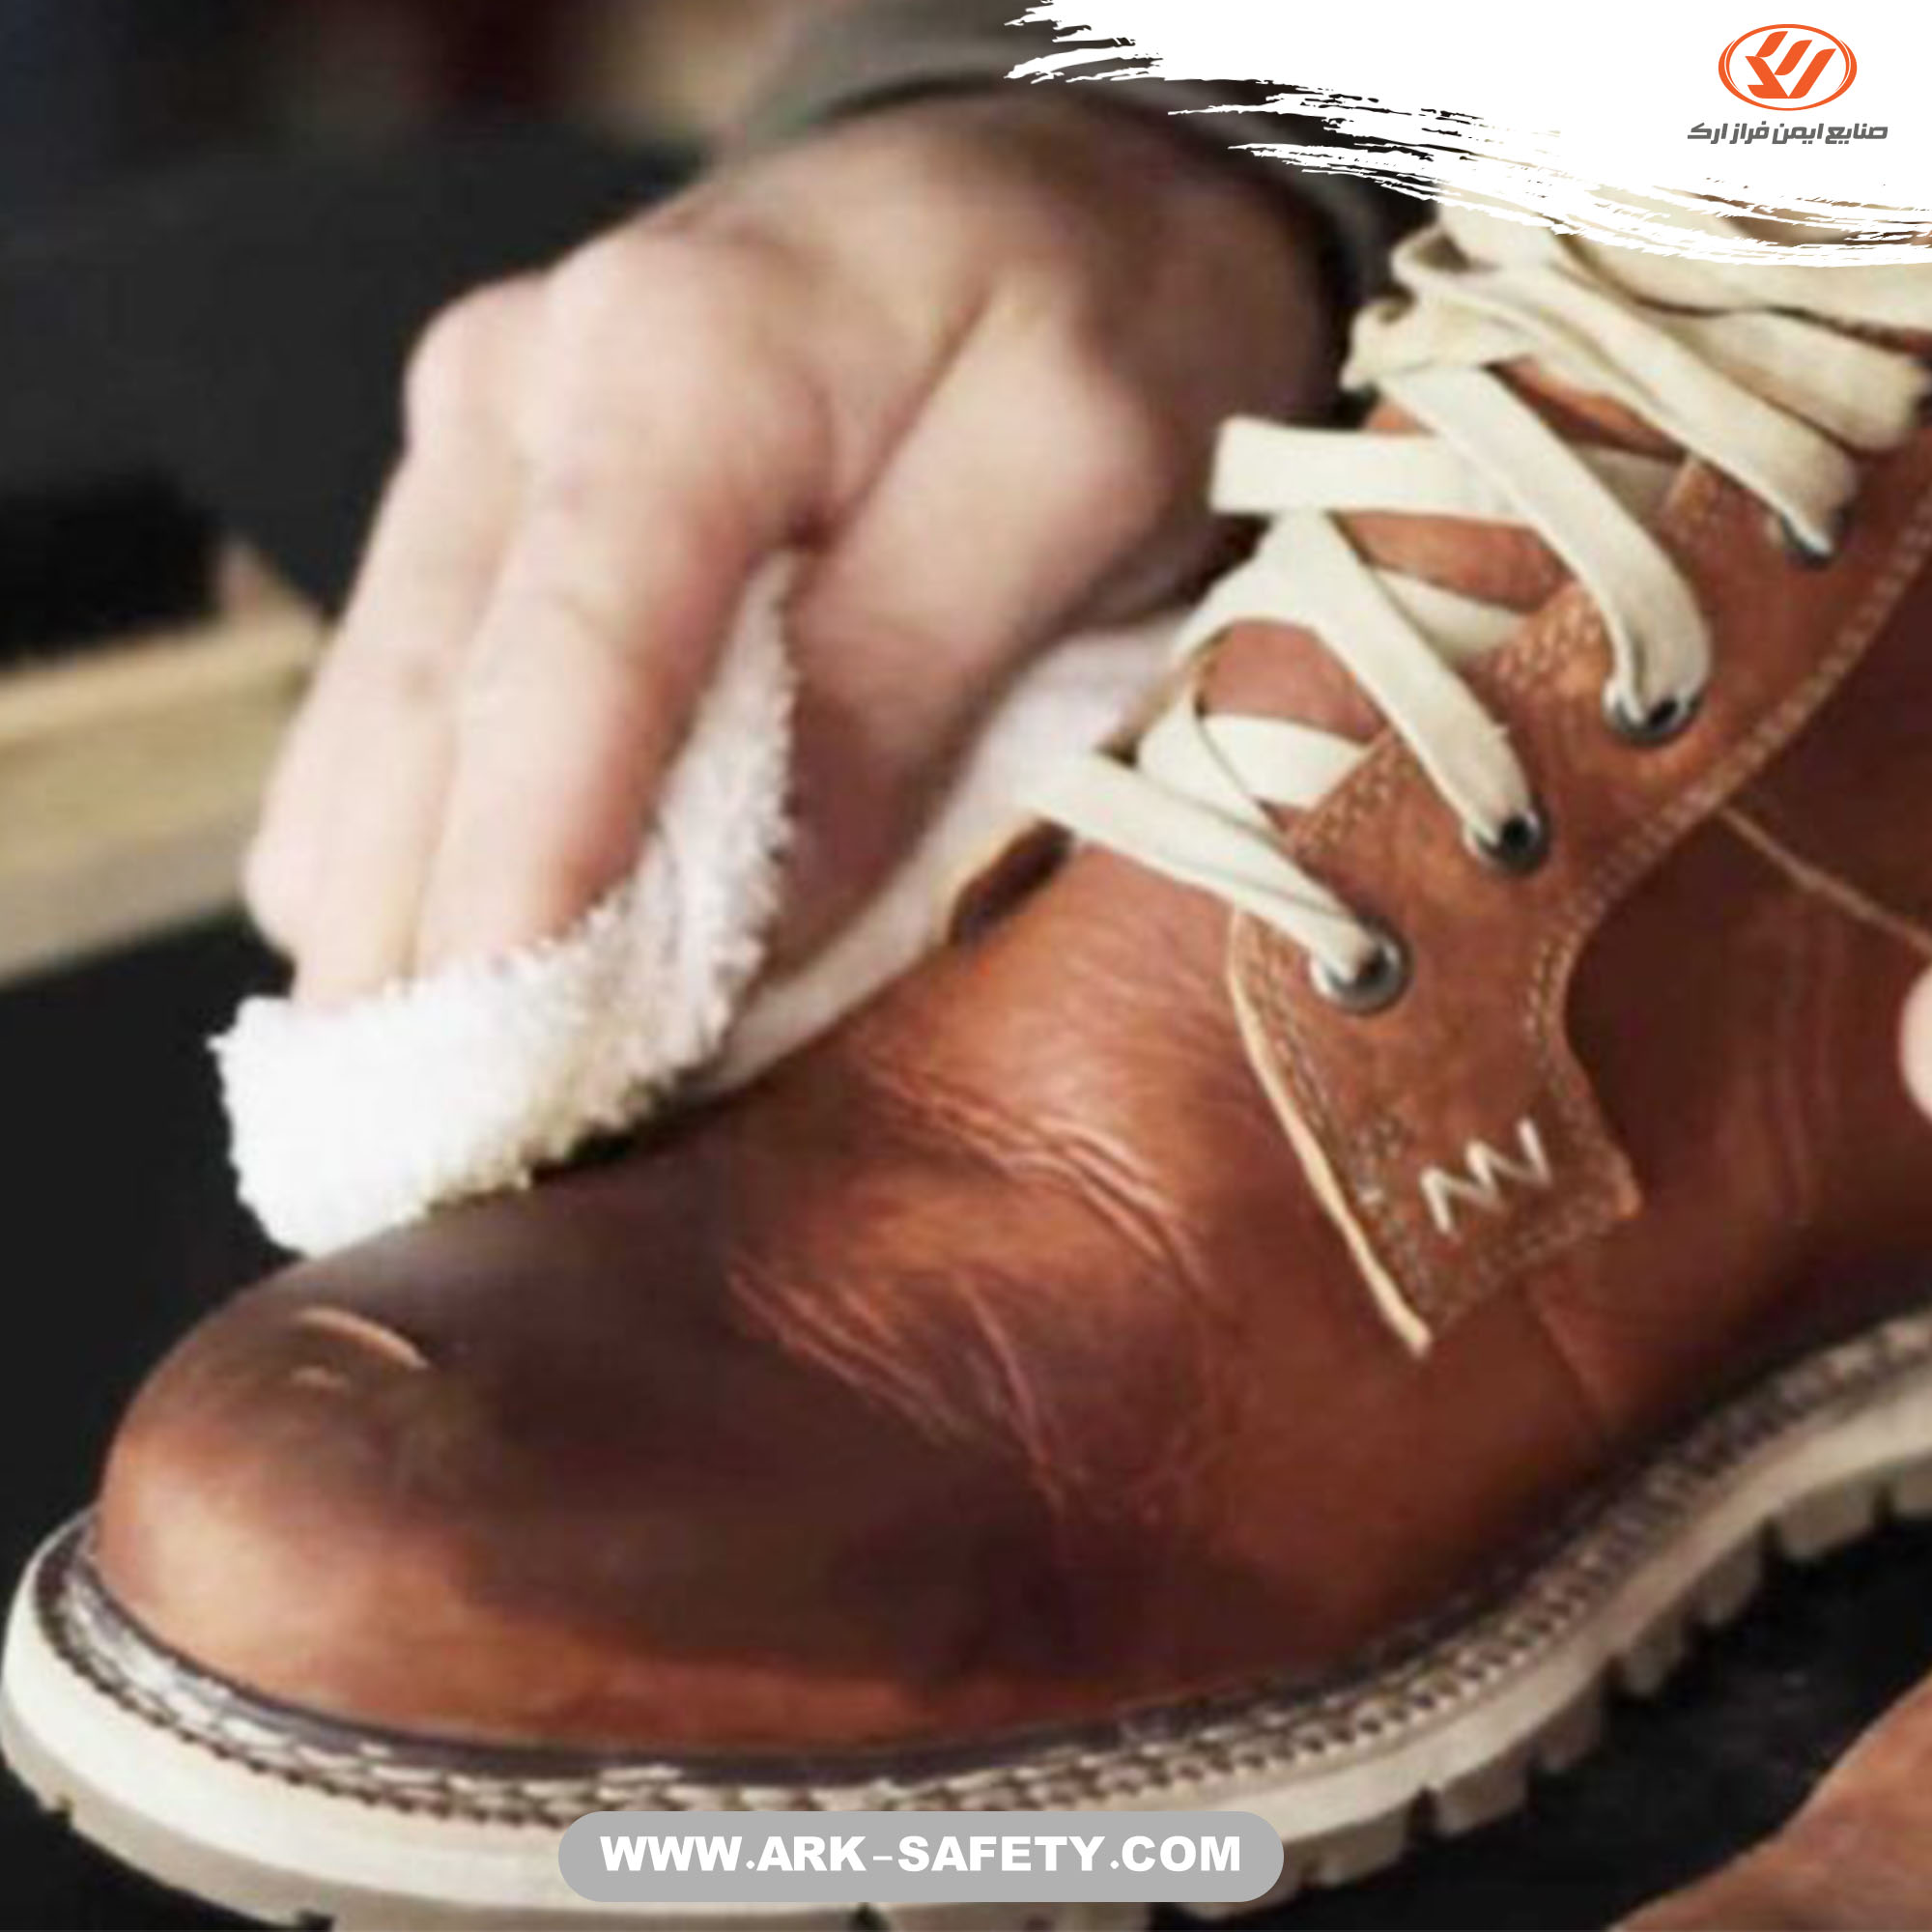 How to take care of safety shoes